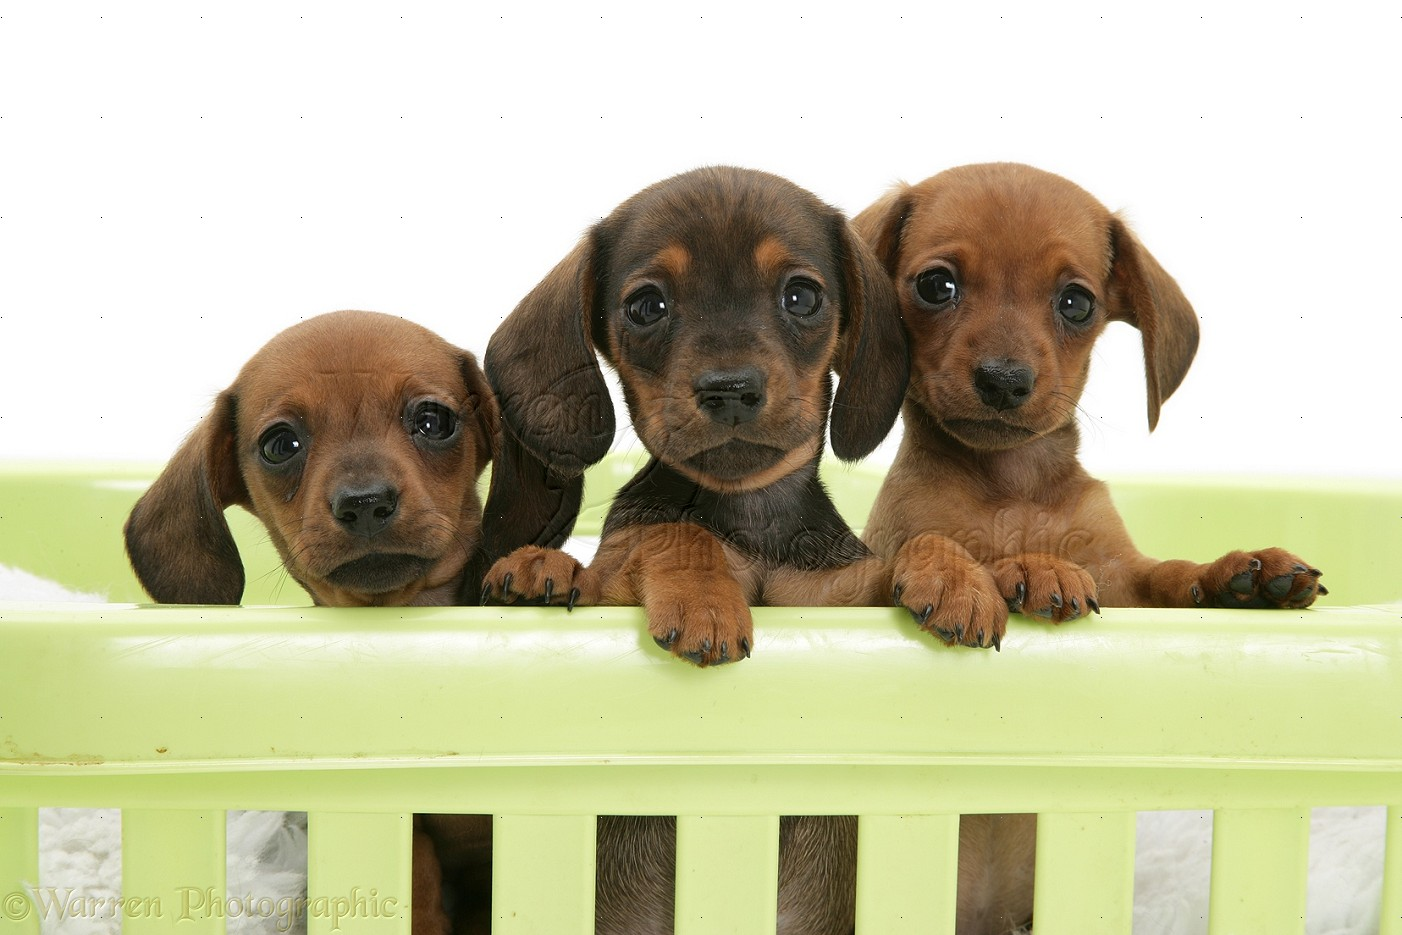 Dogs: Red miniature Dachshund pups, paws over photo - WP17542